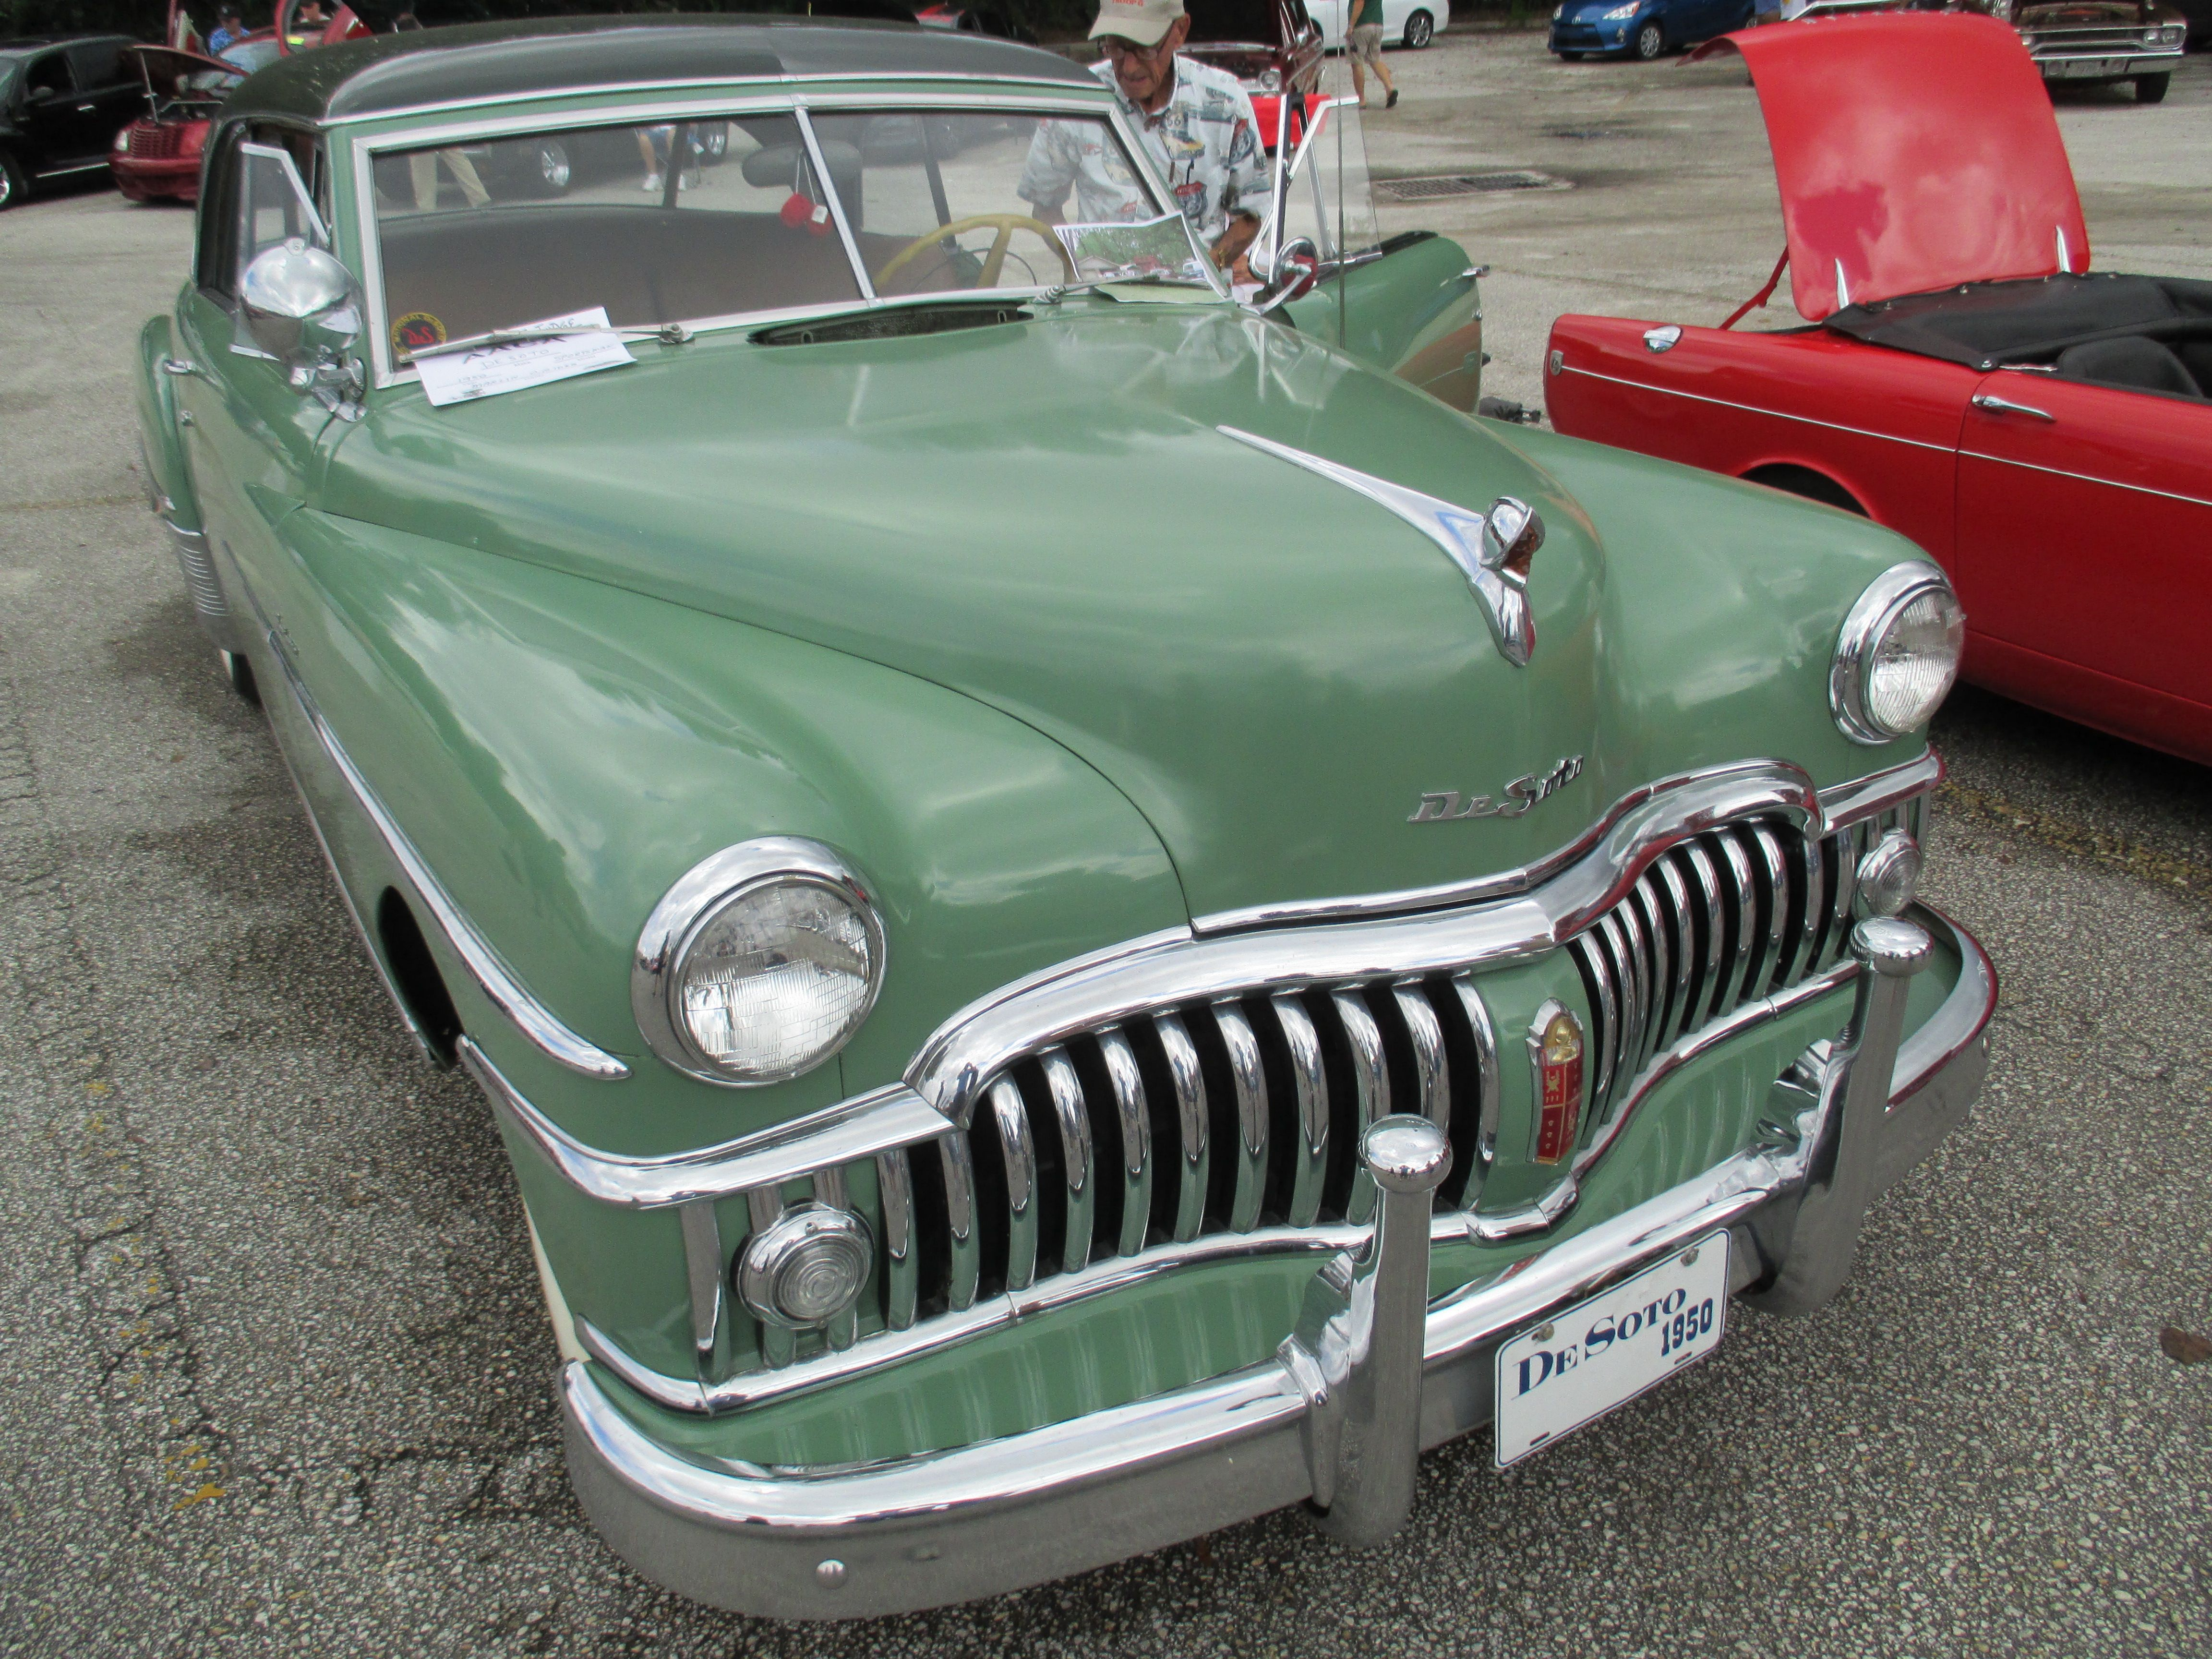 1956 desoto firedome seville 4 door hardtop 1 of 10 - 1950 Desoto Custom Sedan Dad Had A Light Blue 50 Or 51 Semi Automatic That I Got My License In That S My Car Pinterest Sedans Cars And Mopar